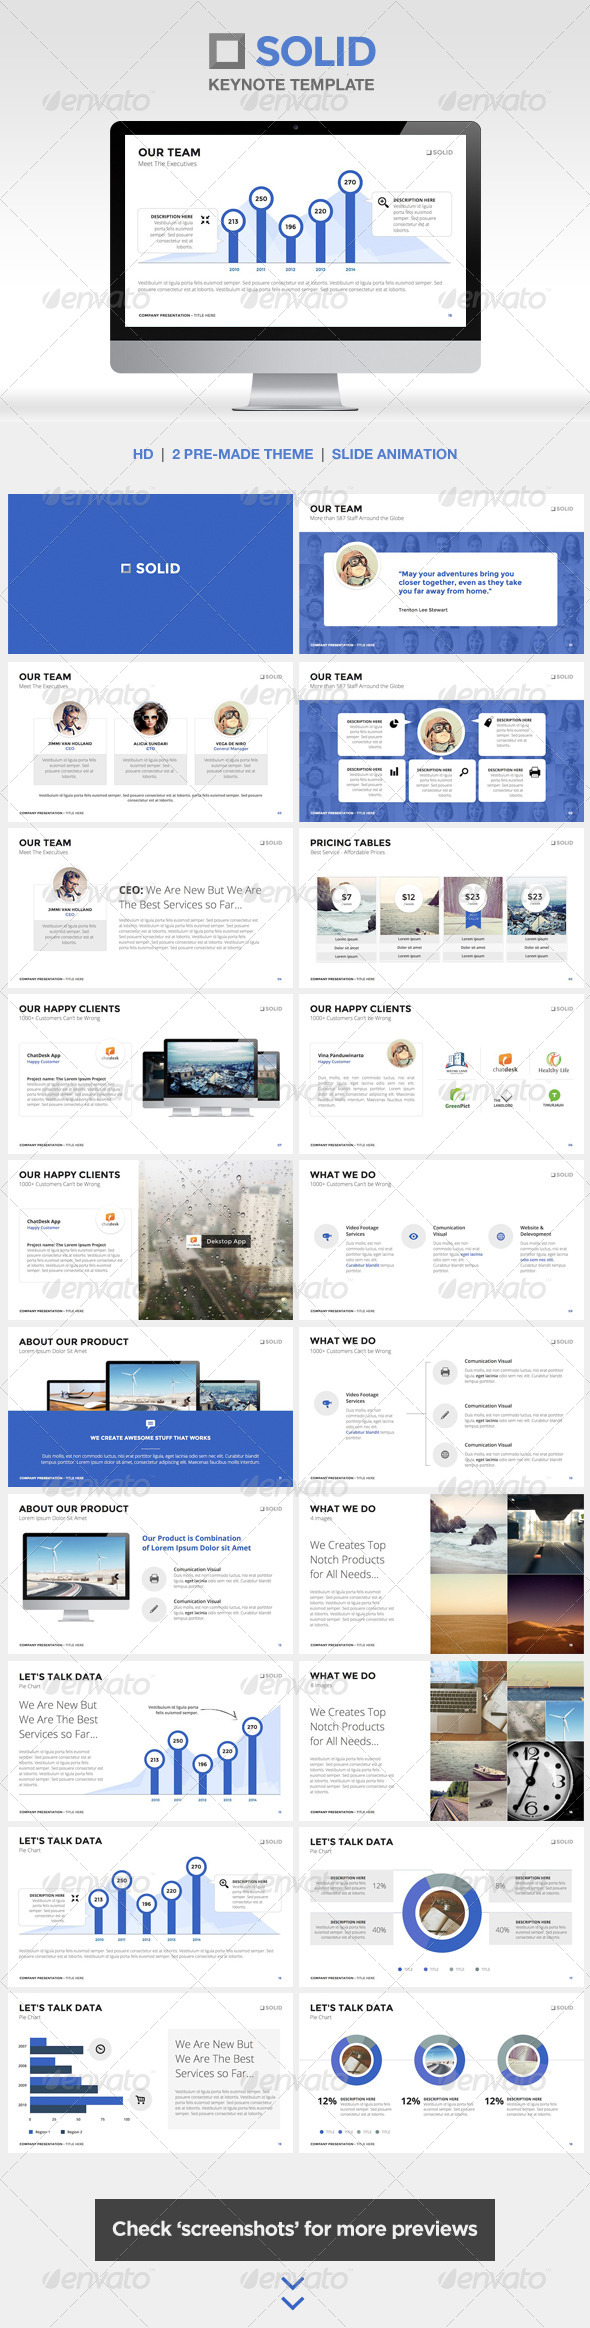 GraphicRiver Solid Keynote Template 7249687